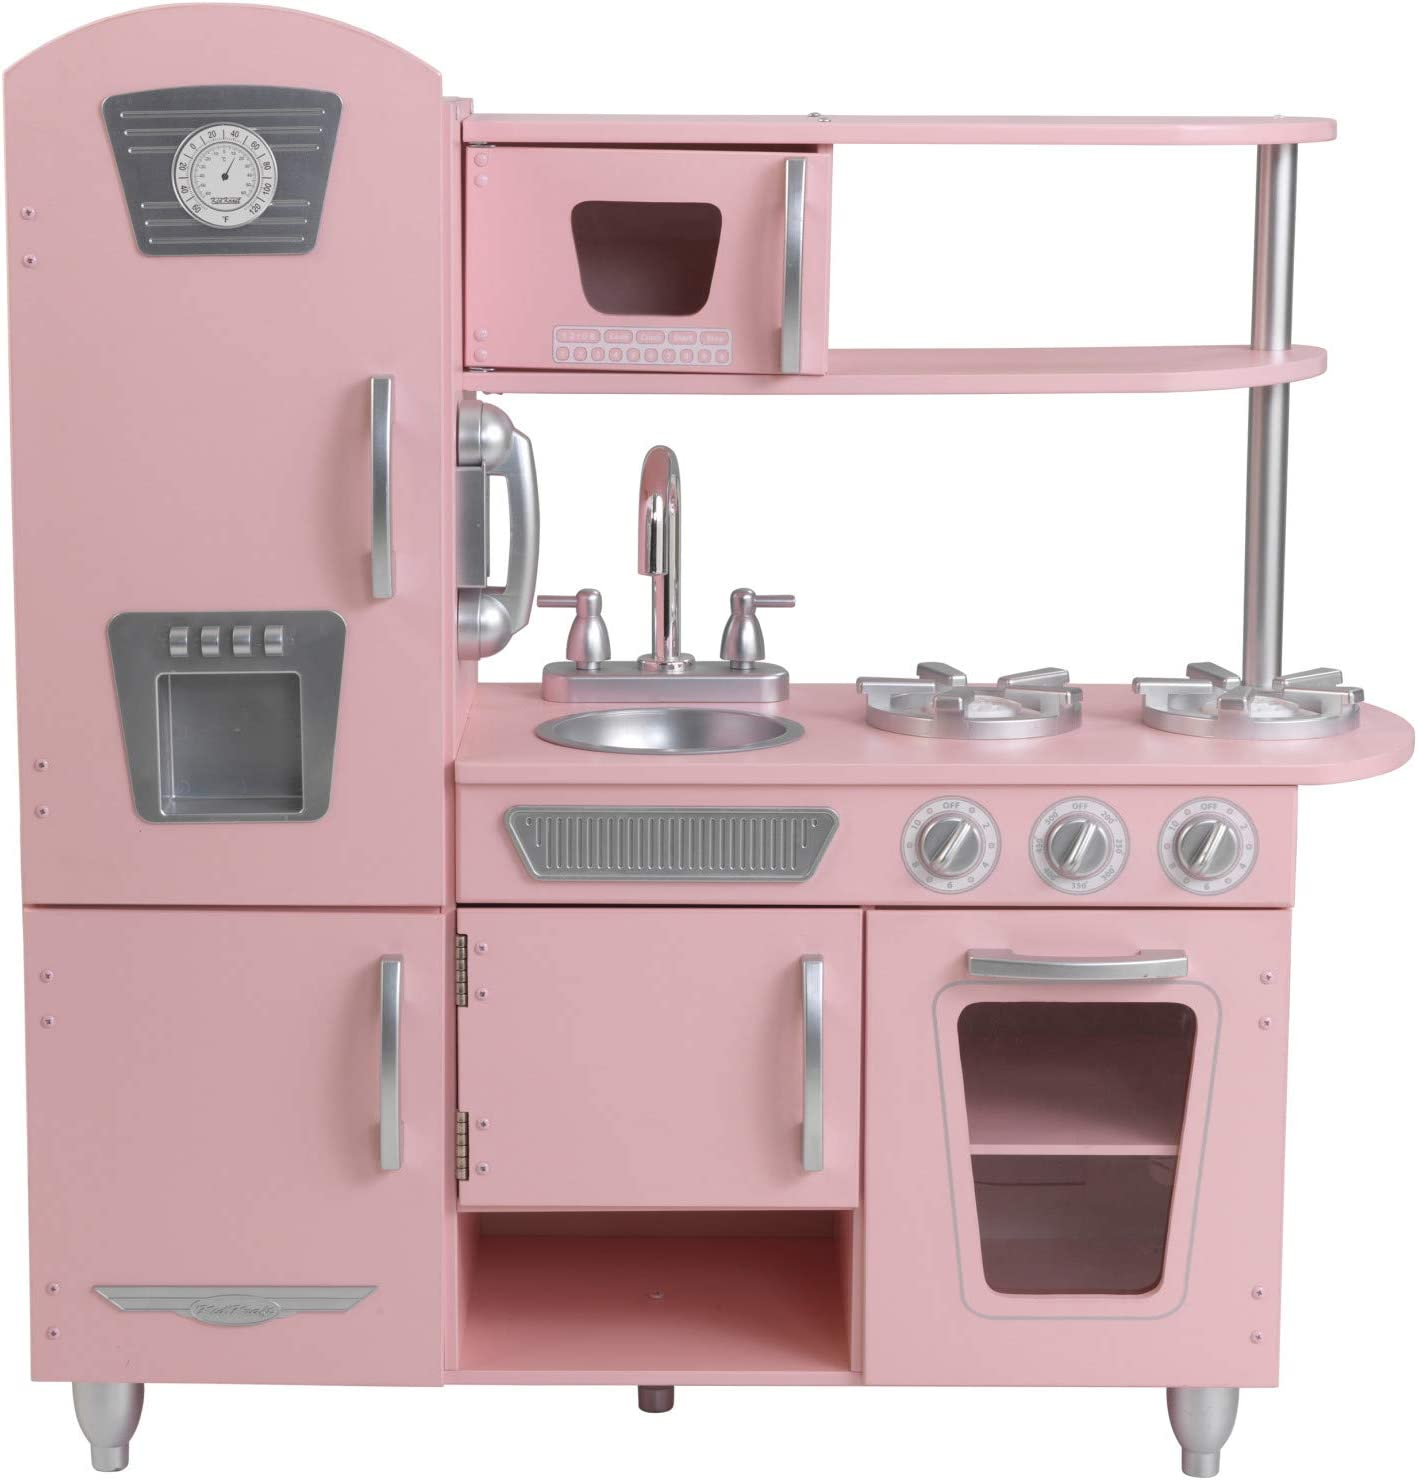 Kidkraft Vintage Wooden Play Kitchen With Pretend Ice Maker And Phone Pink Gift For Ages 3 Toys Games Amazon Com